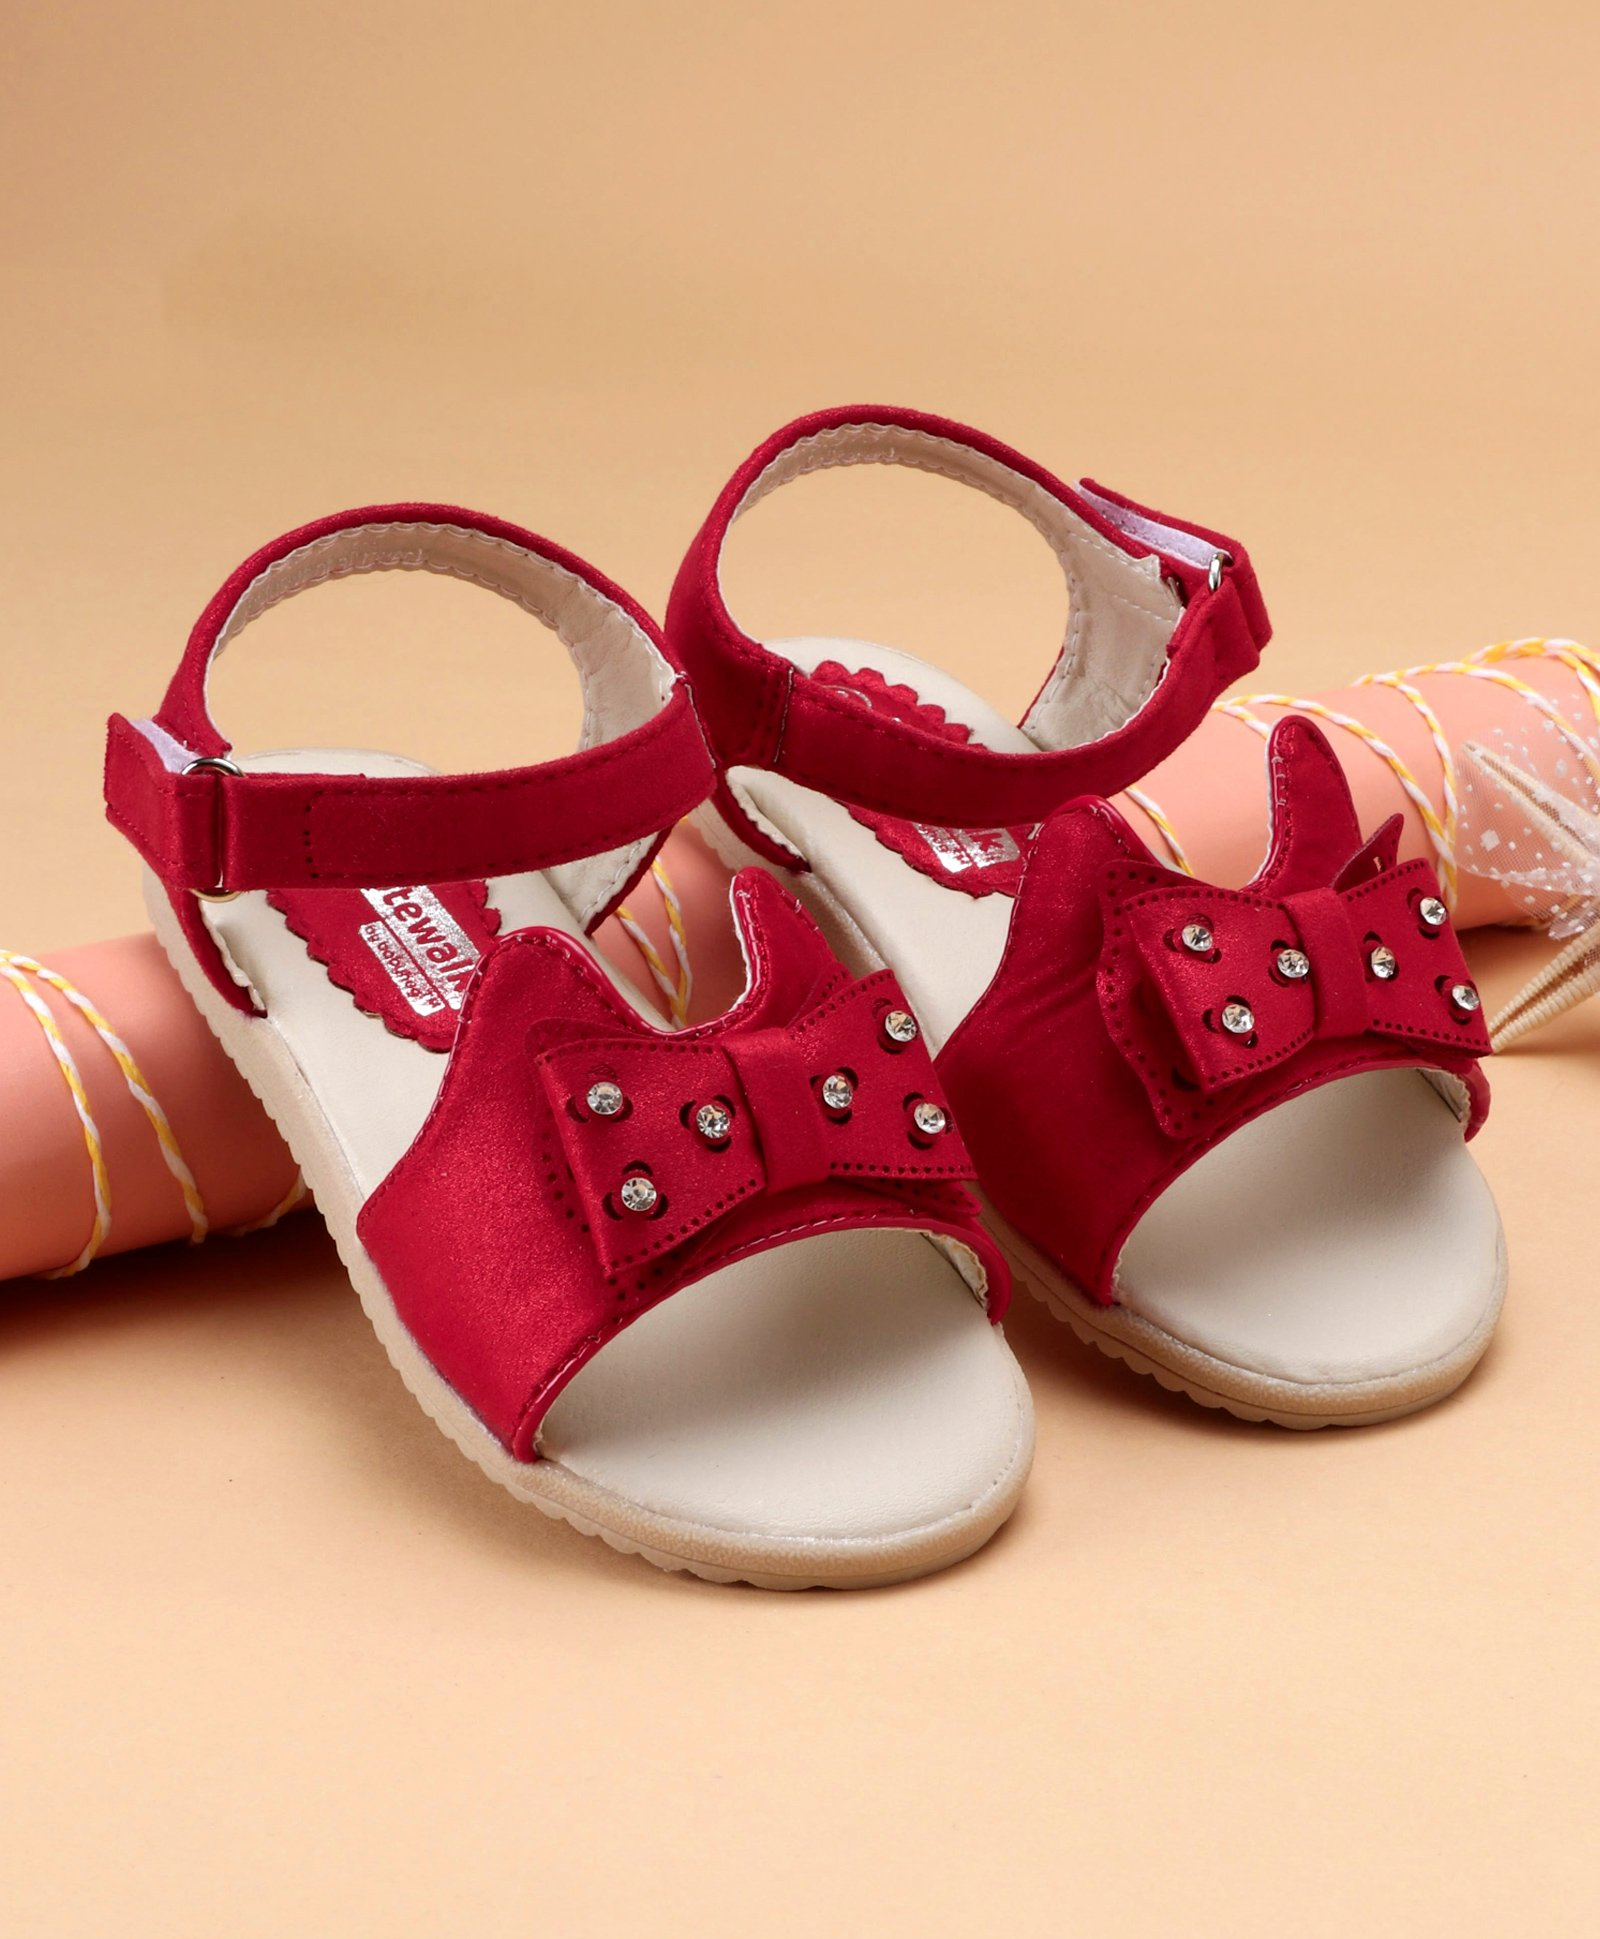 770255fb613 Buy Cute Walk by Babyhug Peep Toe Sandals With Bow Motif Red for ...